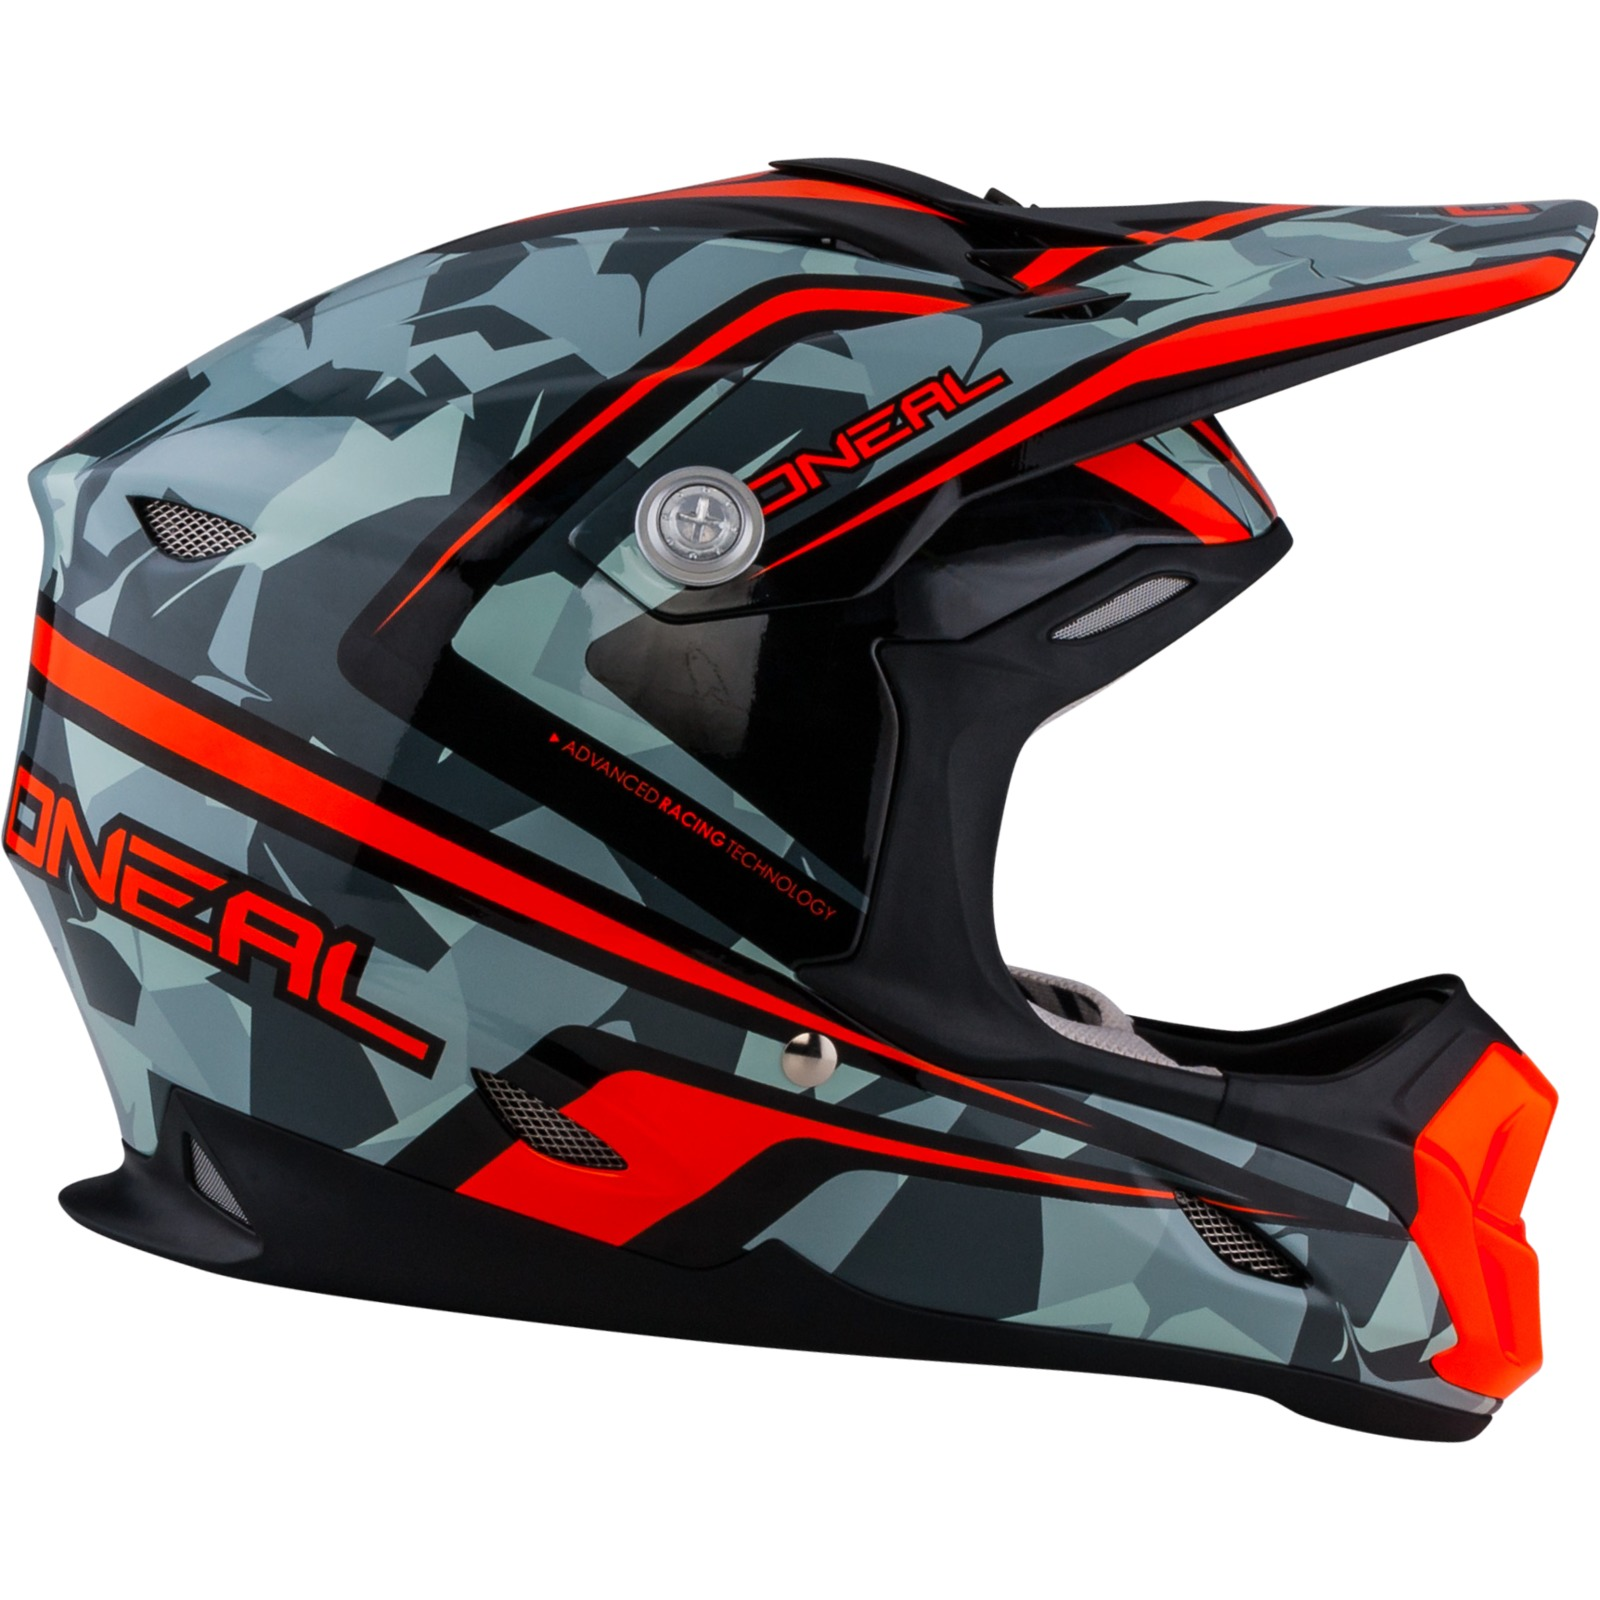 oneal 7 series camo grau orange motocross helm atv moto x. Black Bedroom Furniture Sets. Home Design Ideas